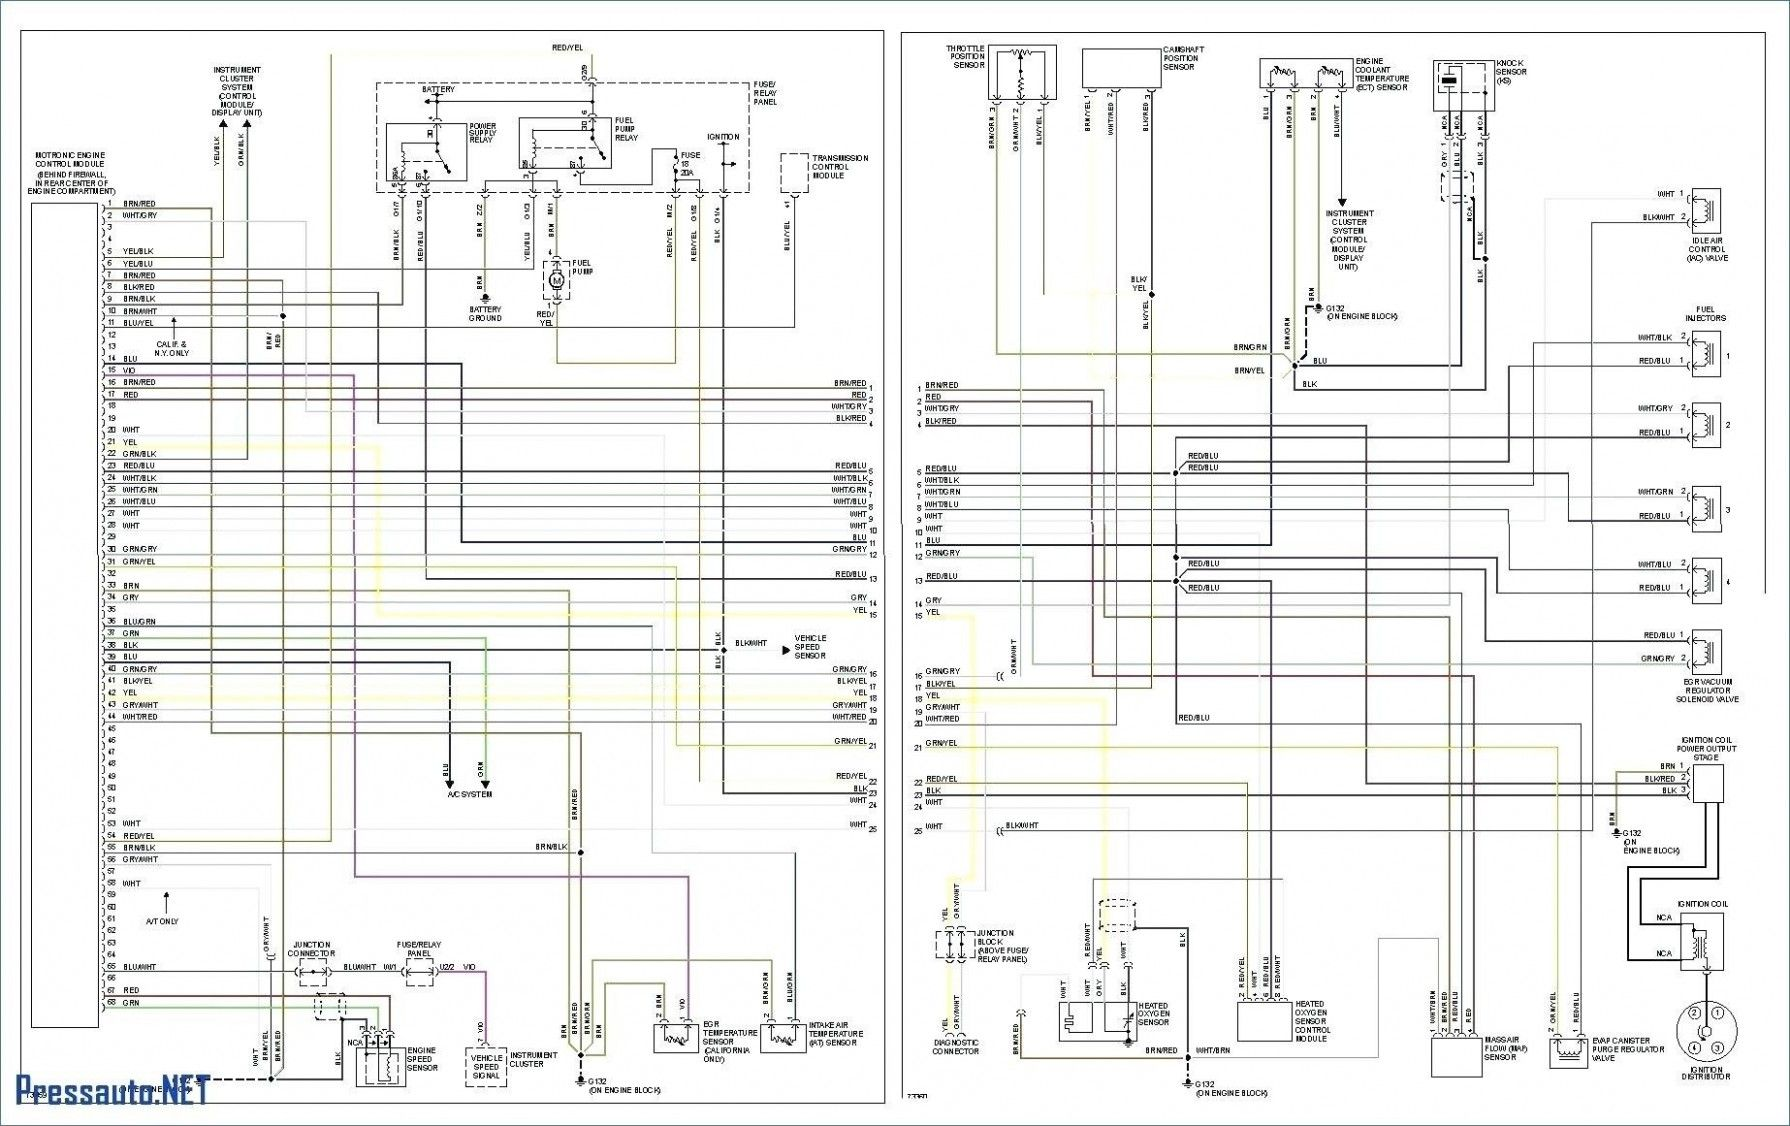 Pin By Angel Magda On Wiring Diagram In 2020 Vw Up Diagram In